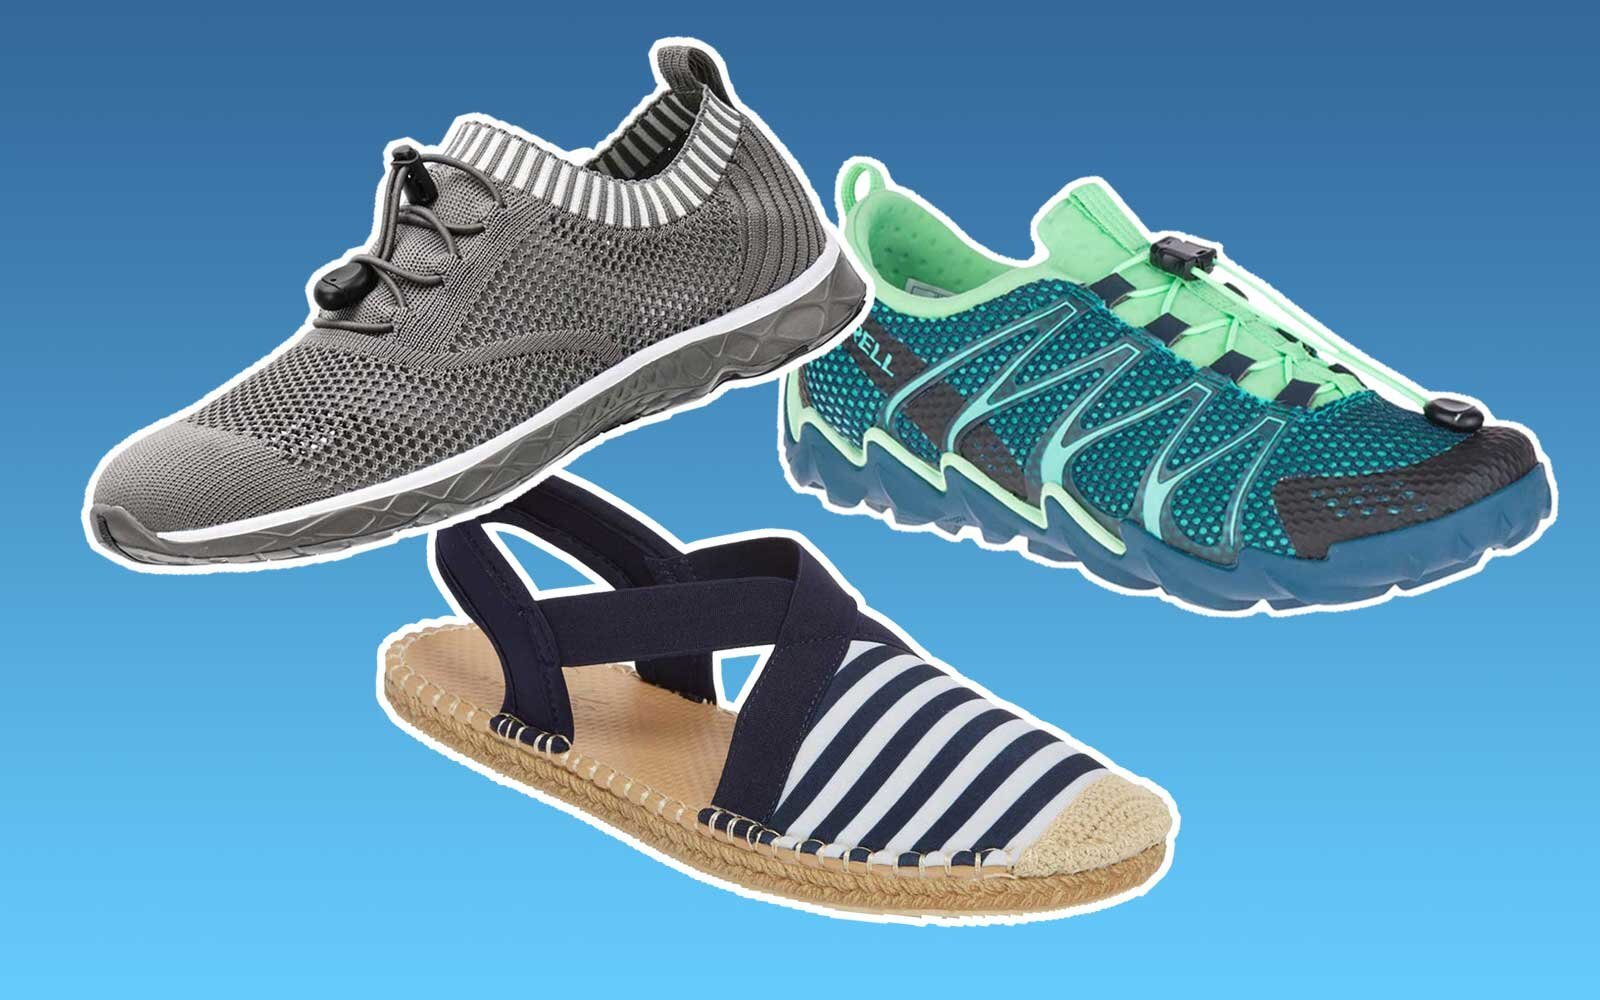 93a1f8dbcb62e The Best Water Shoes for Women in 2019 | Travel + Leisure